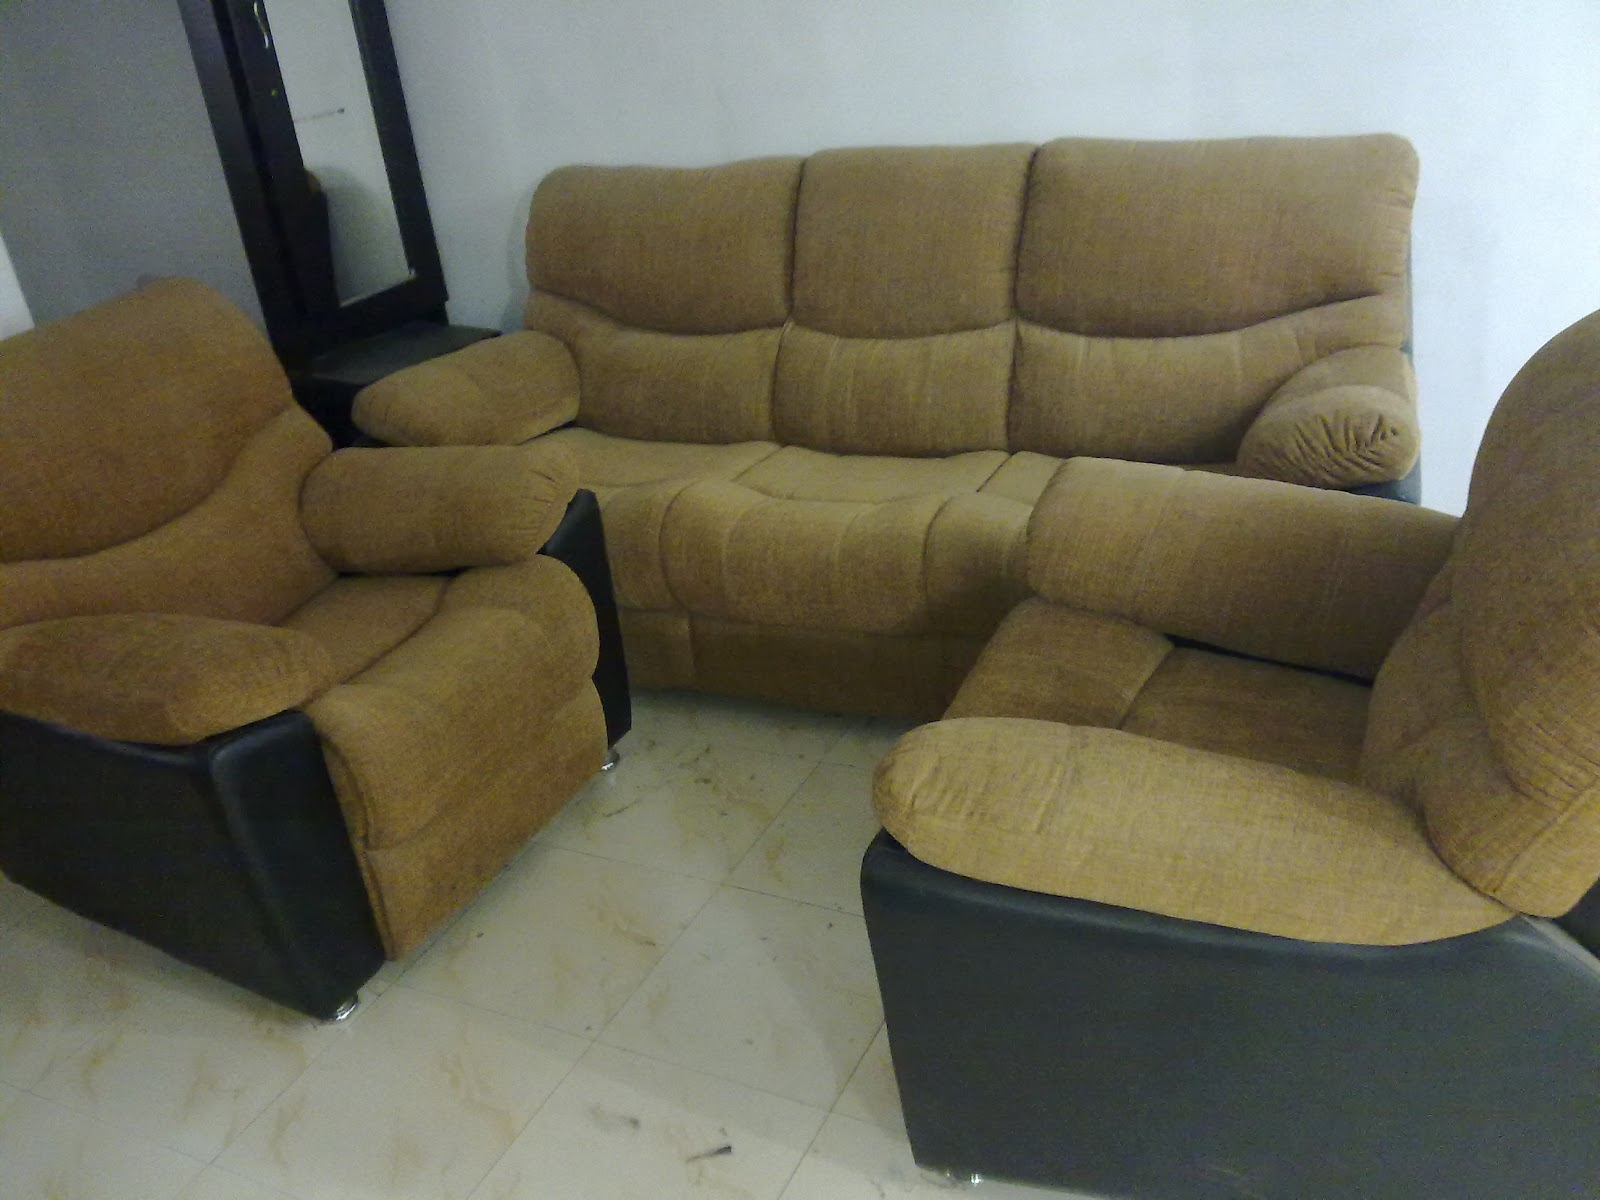 Sofa Set For Sale Hyderabad Union Furniture In Hyderabad And Secunderabad New Sofa Sets